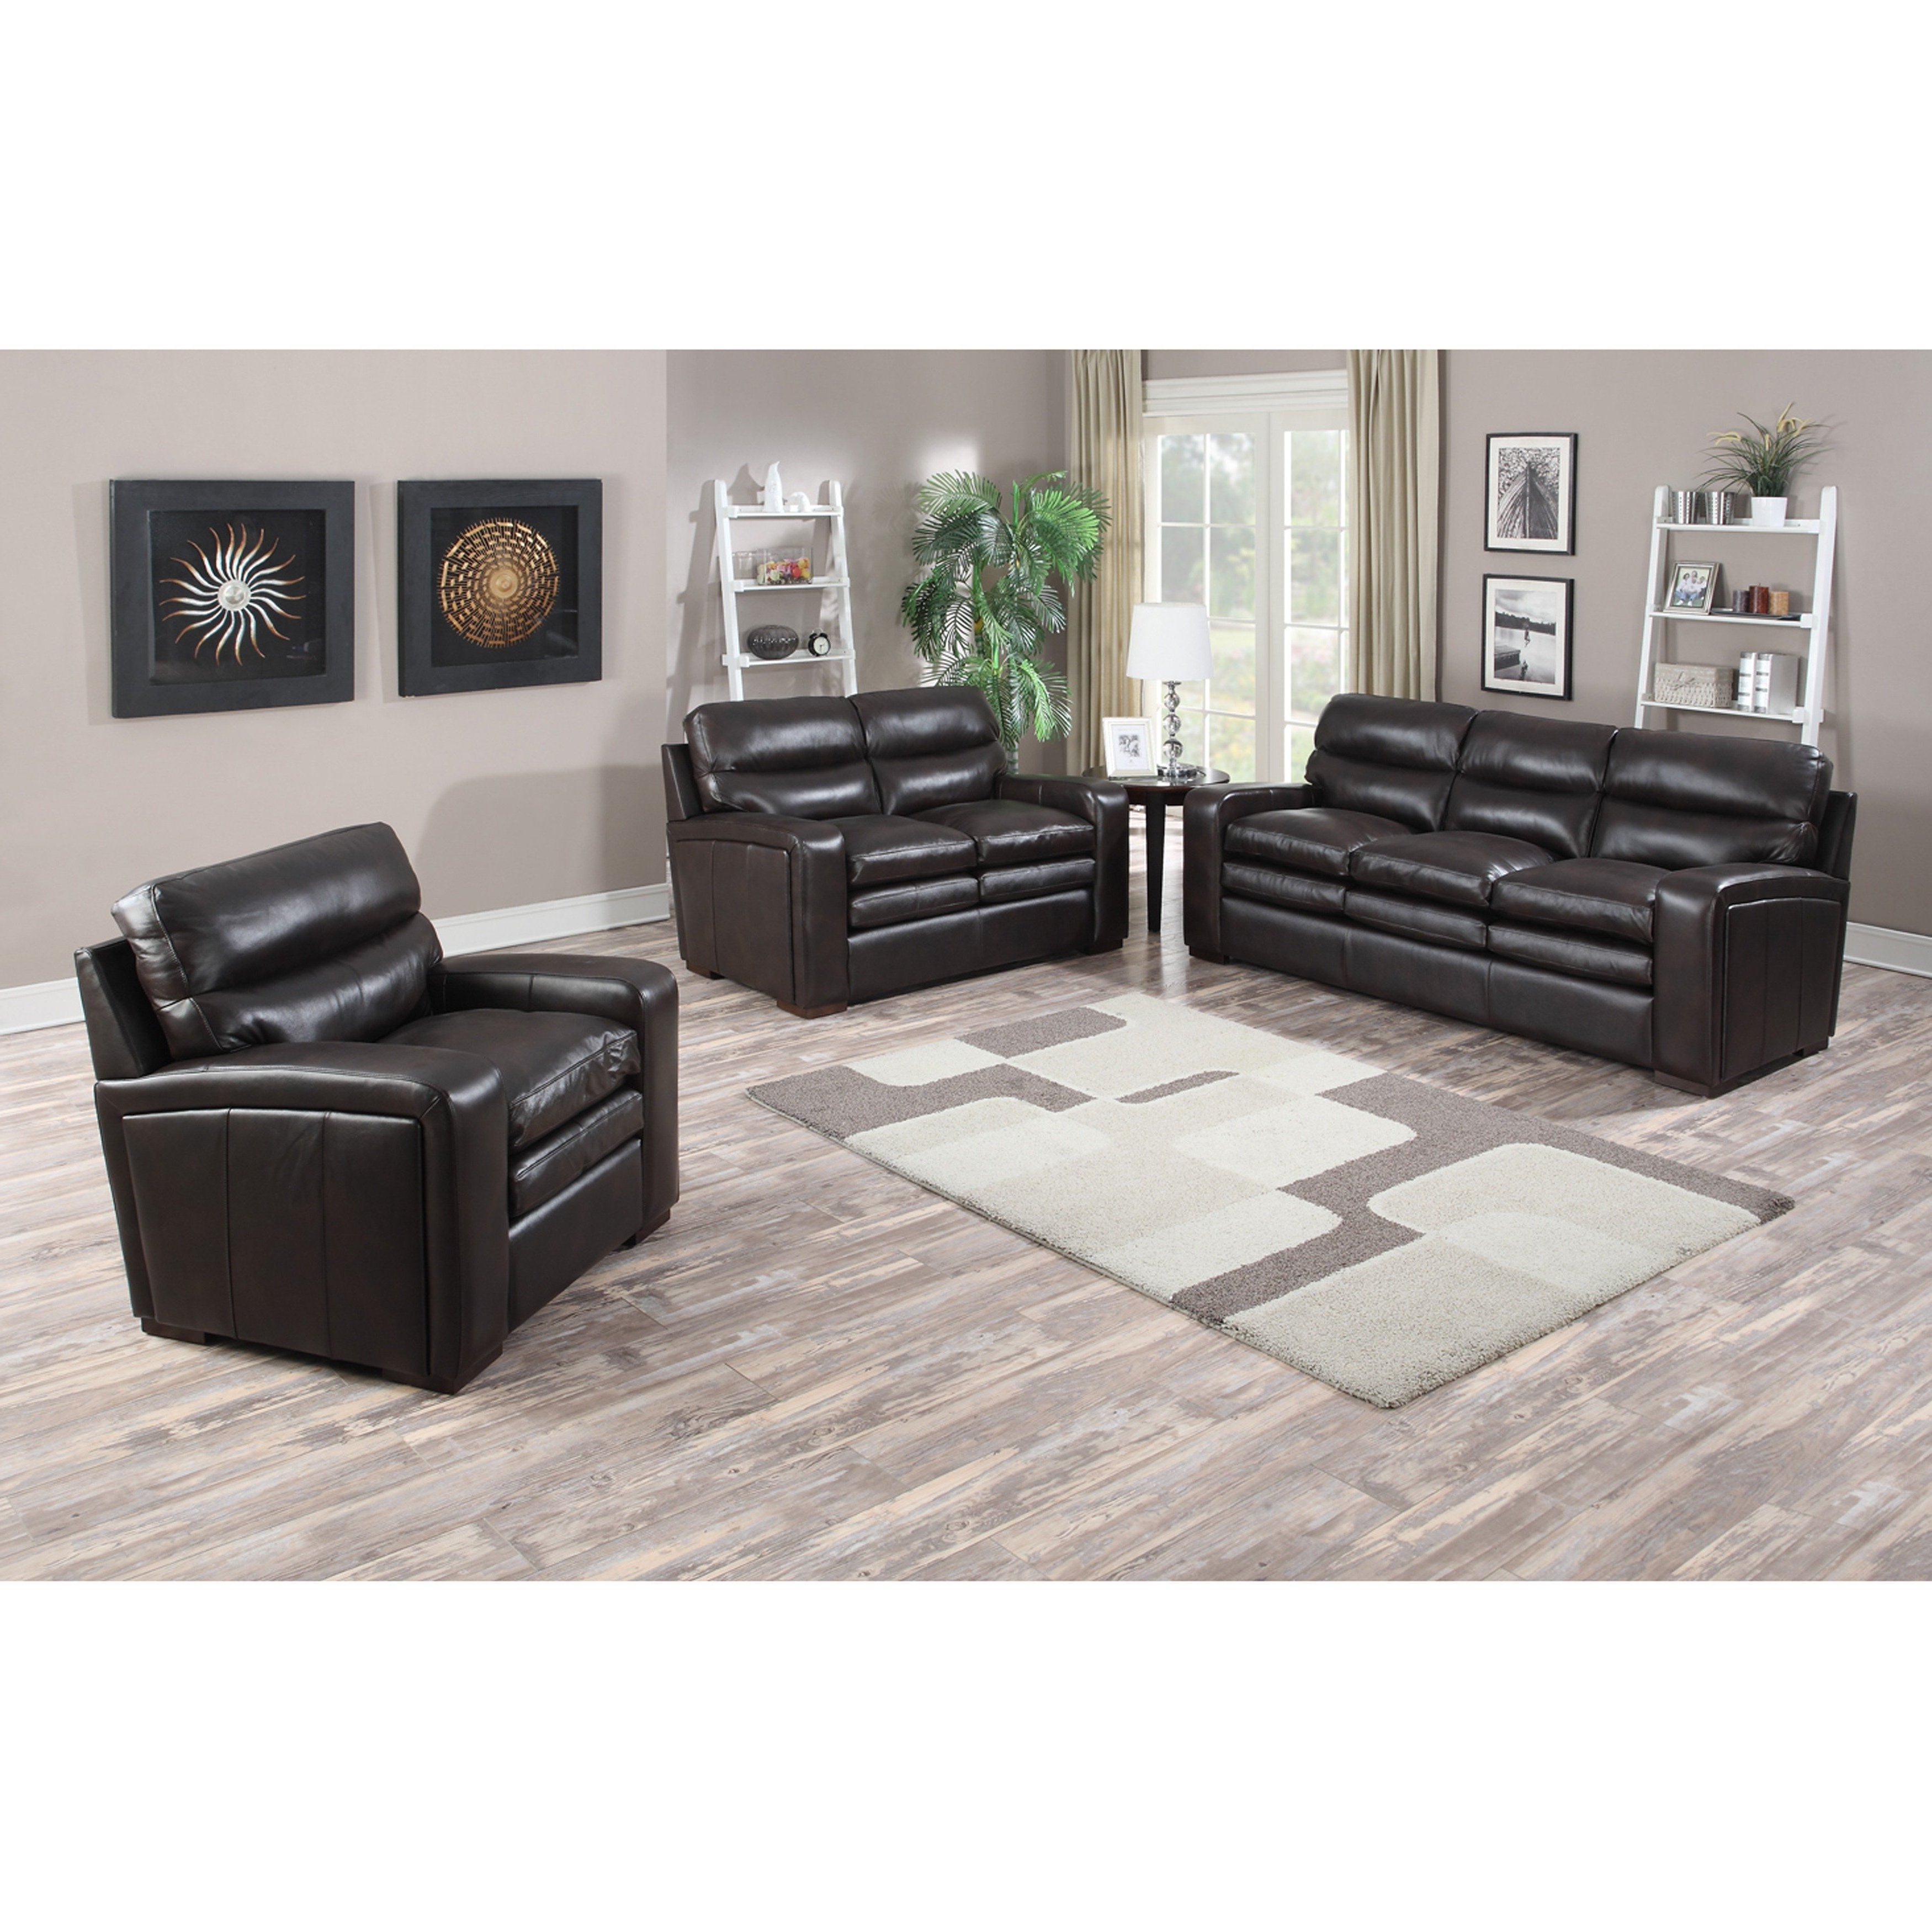 Shop Mercer Dark Brown Italian Leather Sofa, Loveseat And Chair Pertaining To Best And Newest Mercer Foam Oversized Sofa Chairs (View 16 of 20)